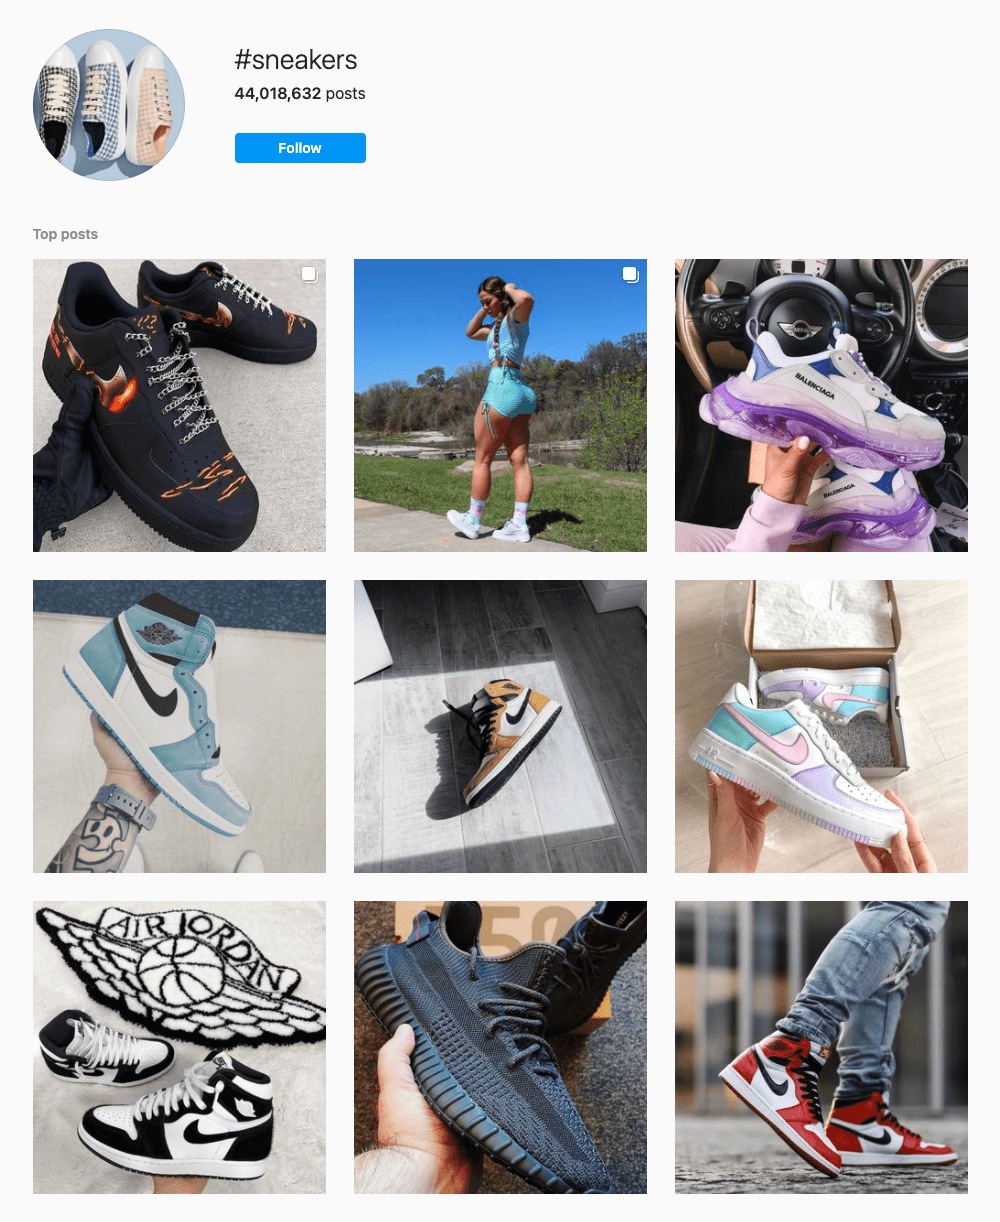 #sneakers Hashtags for Instagram